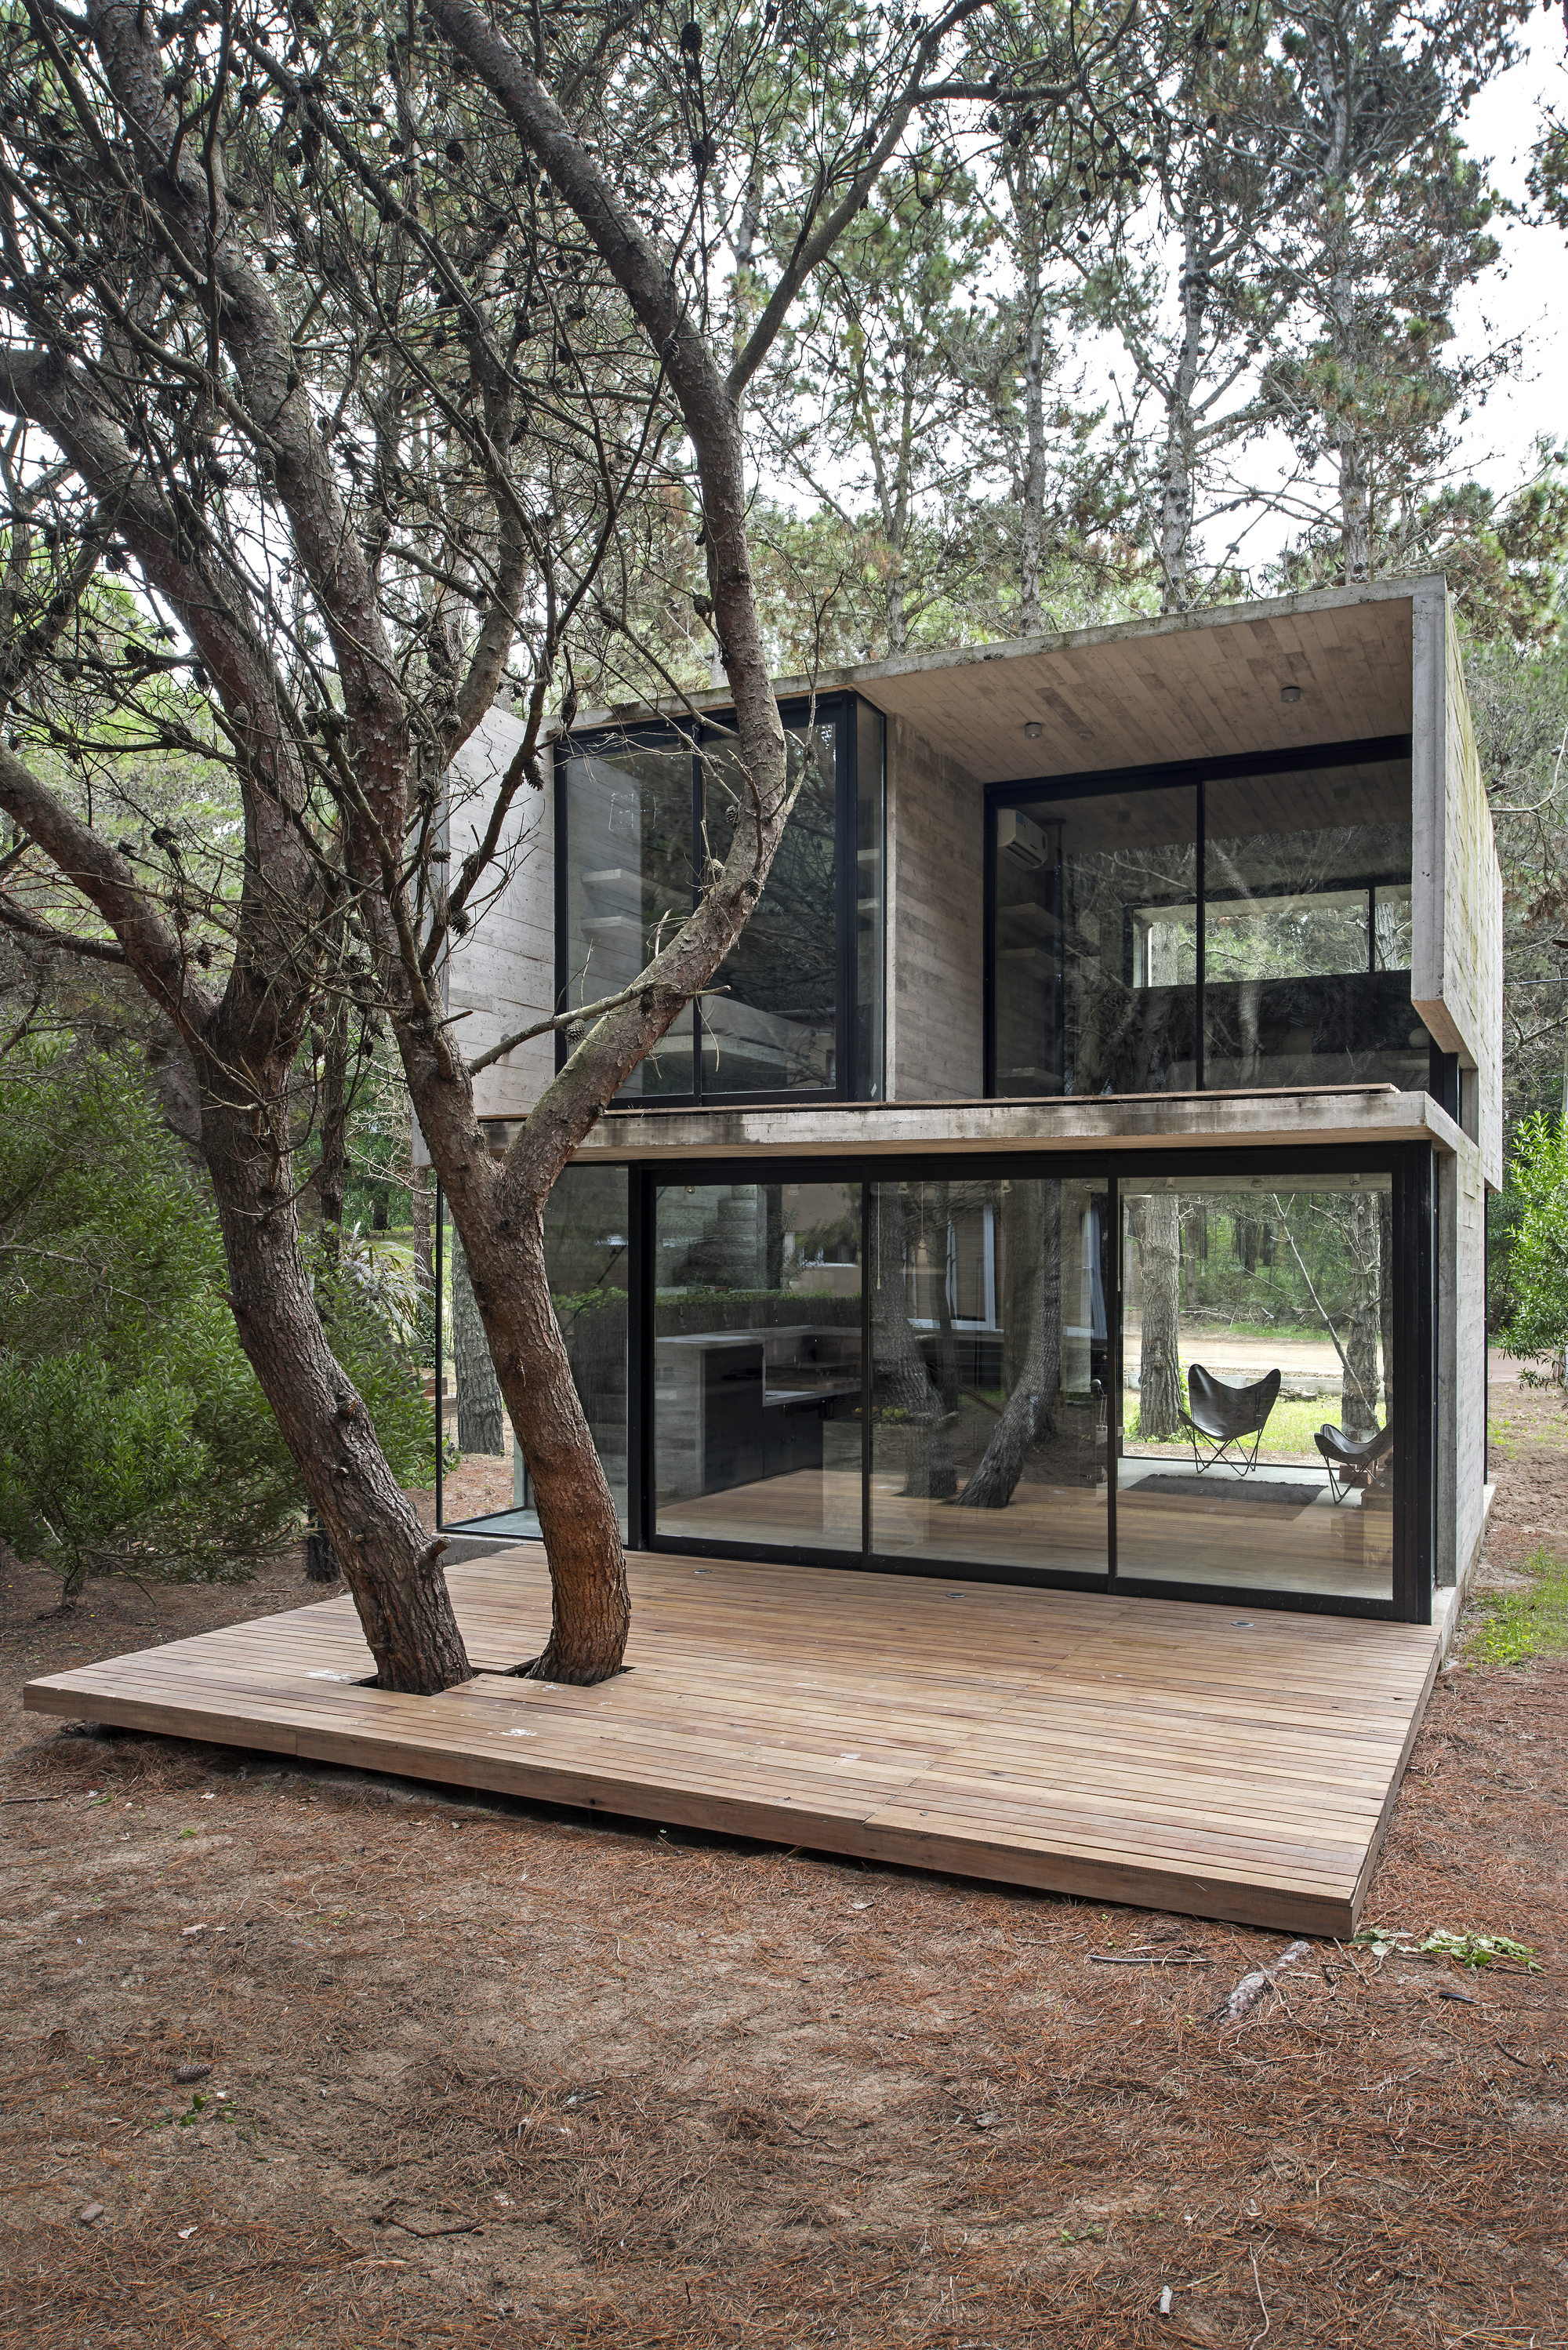 Prefab House The Long House 3 additionally Metal Building Full Home With Epic Pool And A Stable Went Up For Sale 11 also 48 further 4 Alhondiga Bilbao Philippe Starck Inauguracion 600x390 2 likewise An C3 B3nimo. on tiny houses